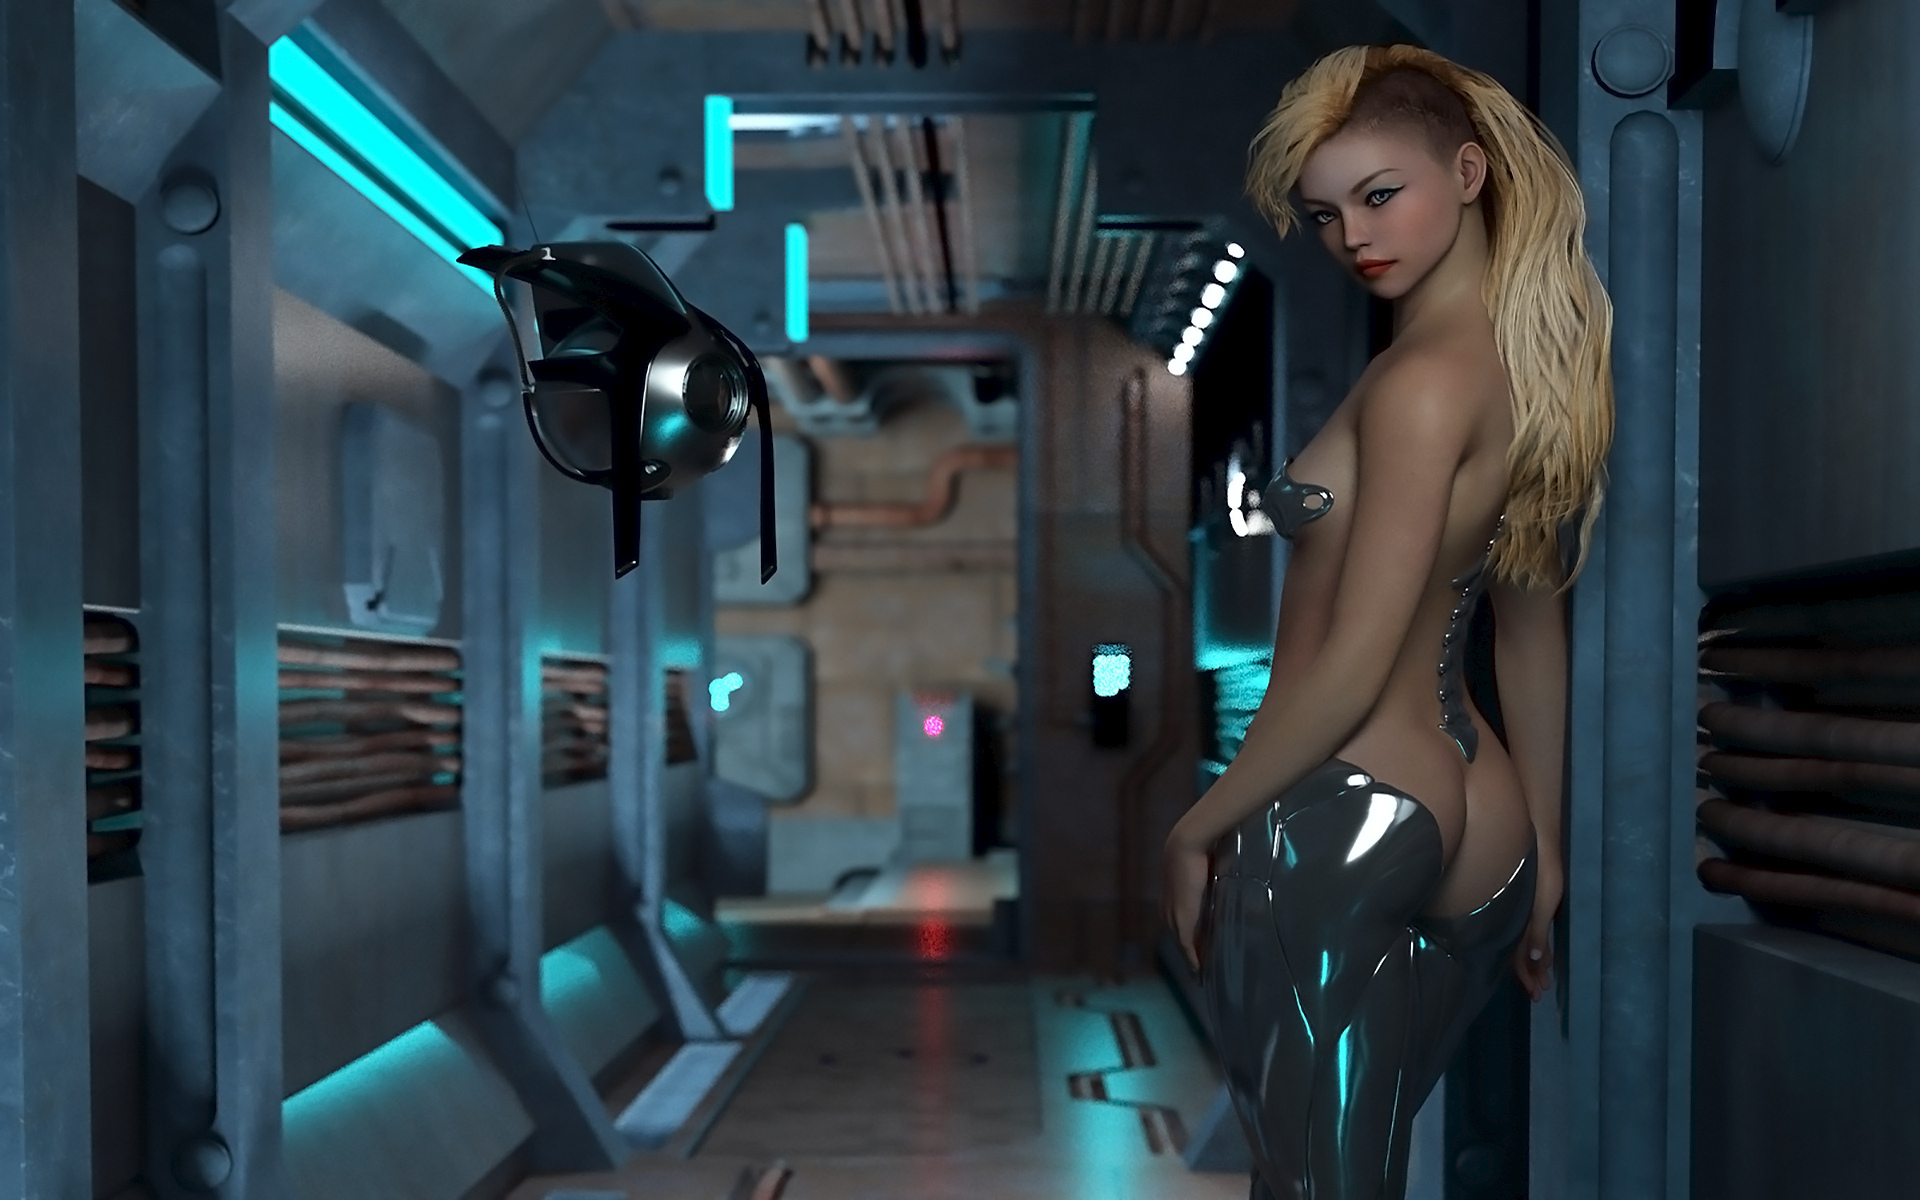 Naked women in space